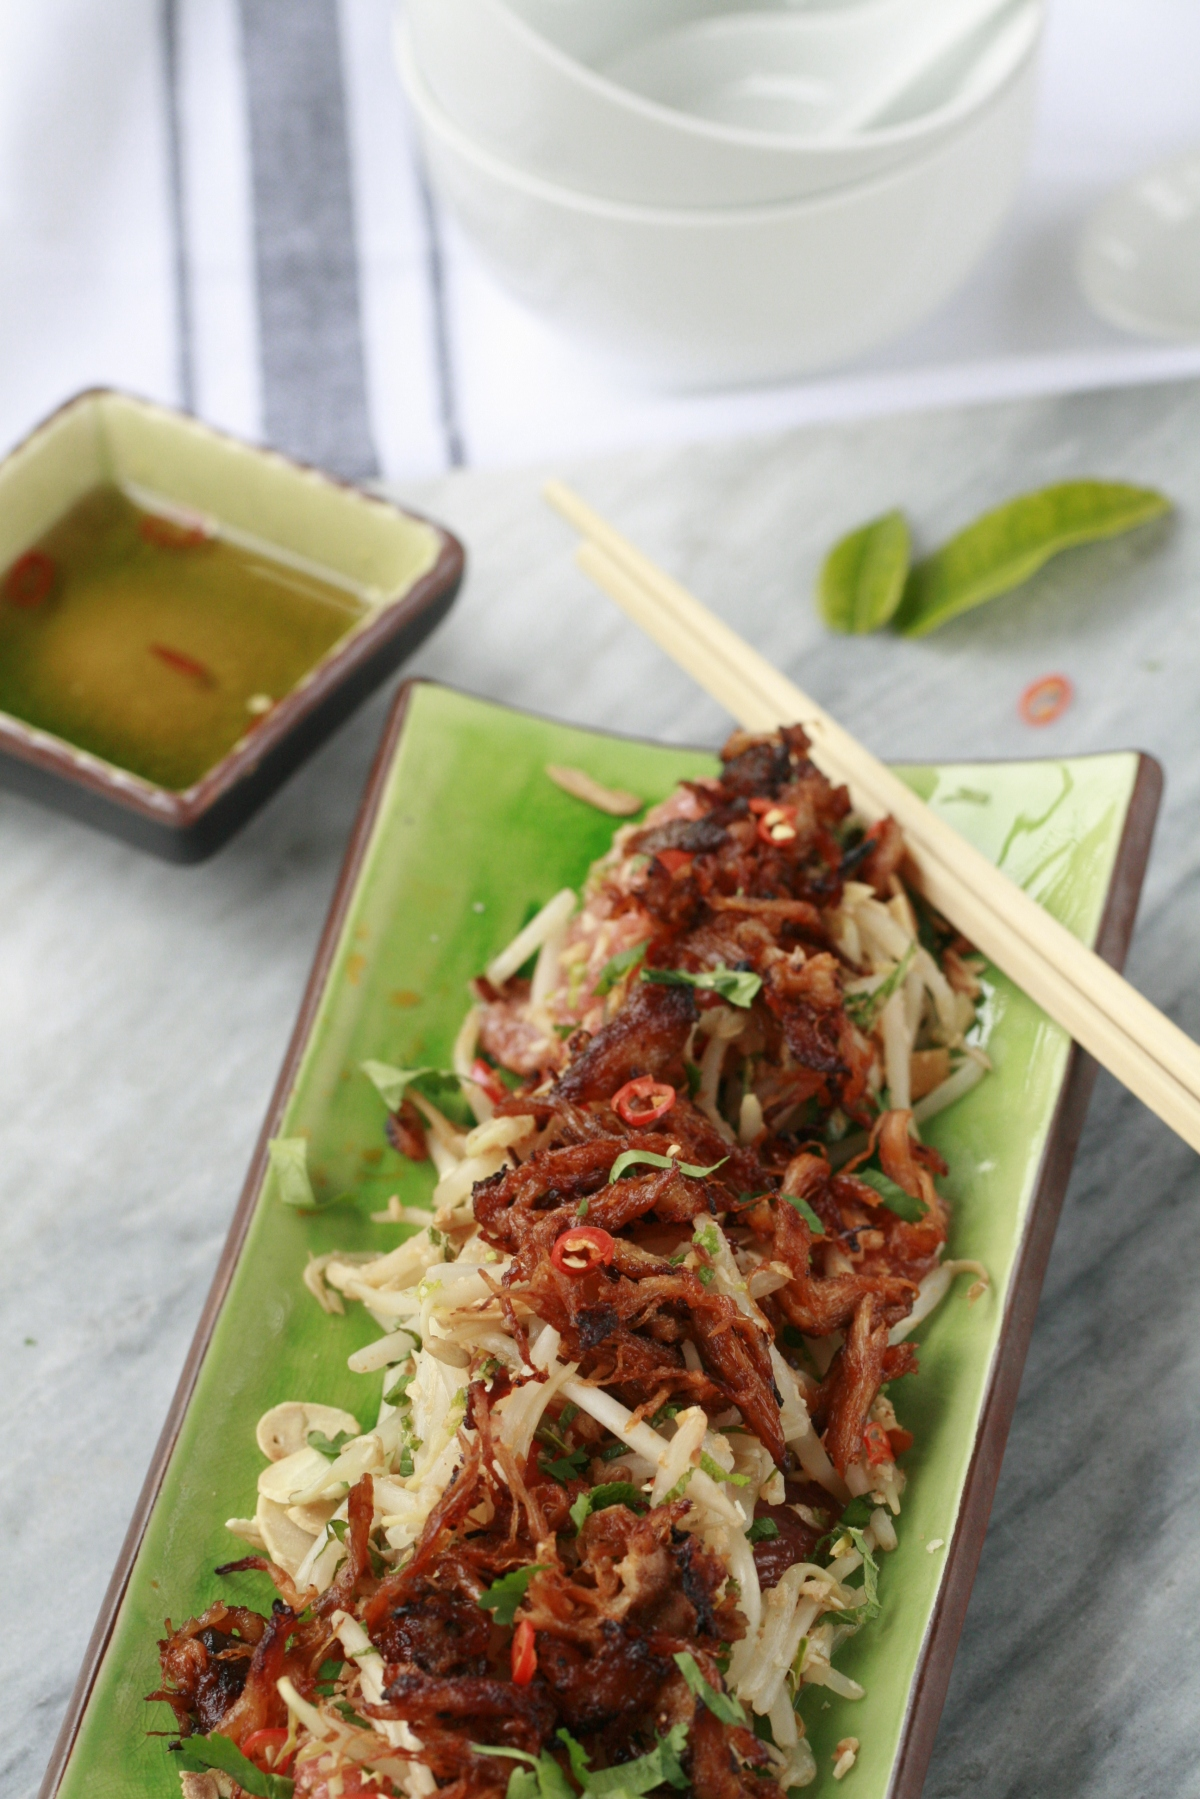 Thai salad of bean sprouts and pink grapefruit topped with crisped remains to the Smokey Pulled Pork